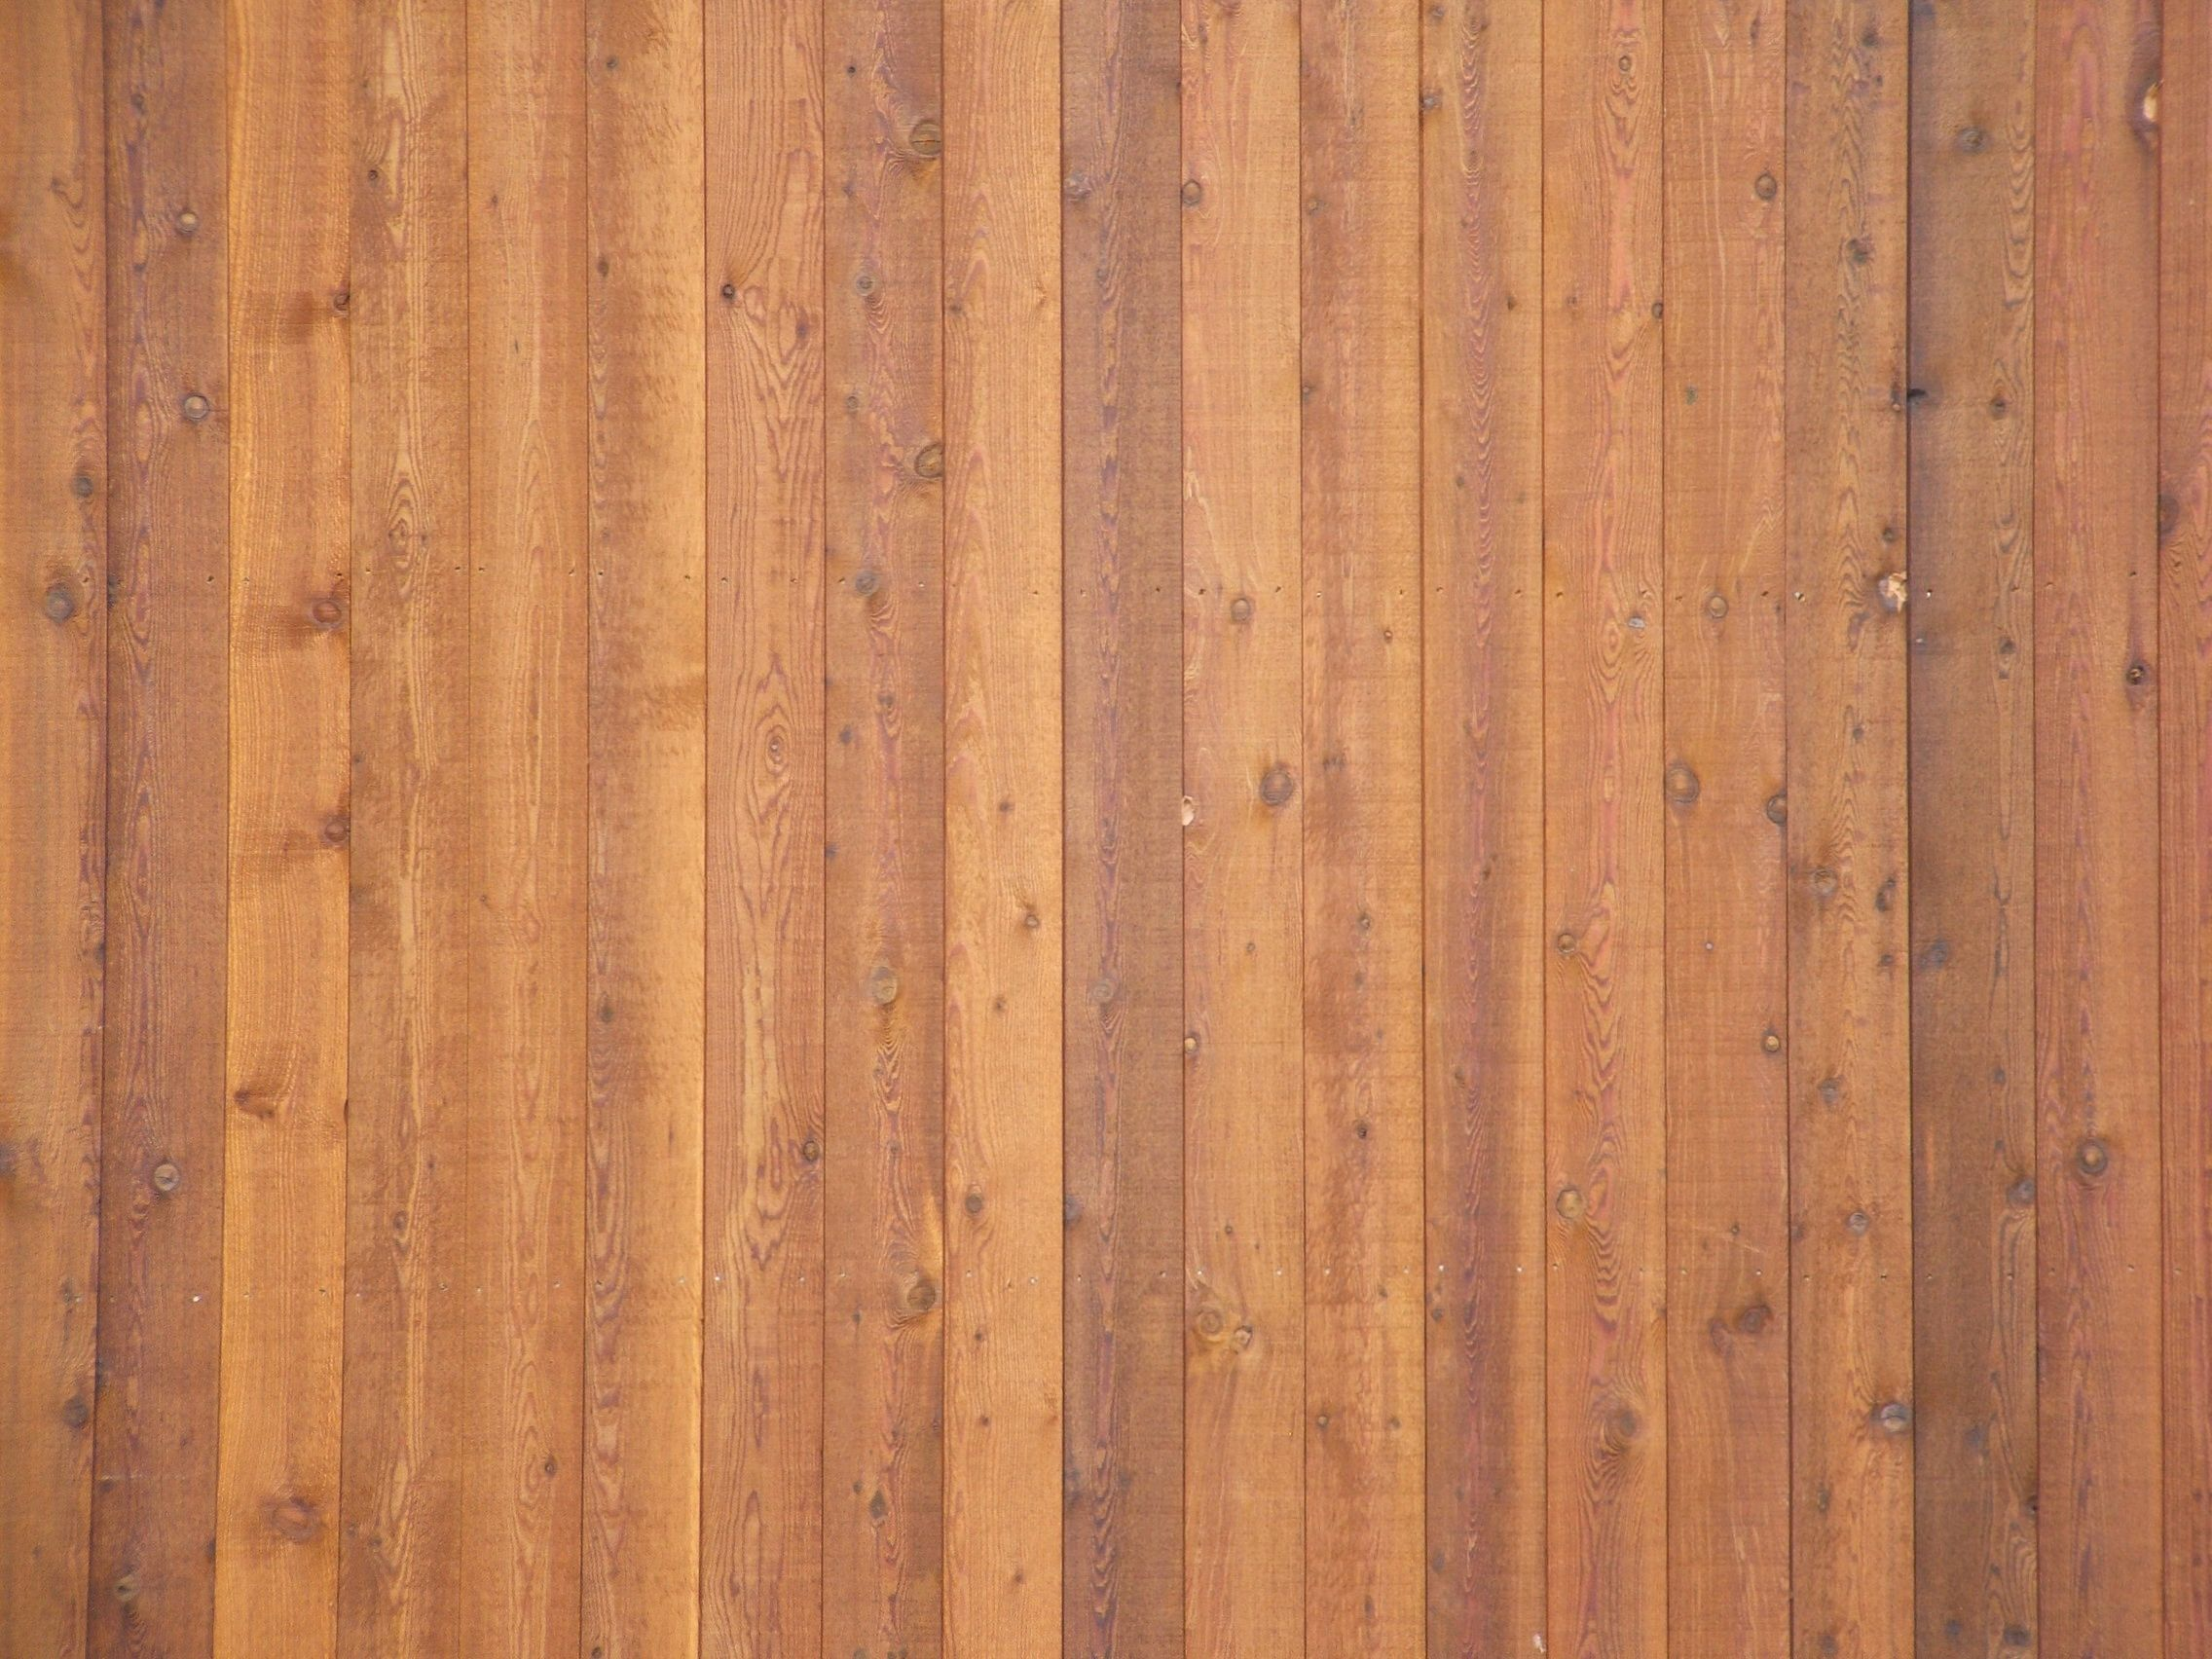 Wall With Wood Free Photo Wooden Wall Texture Wall Wood Tree Free